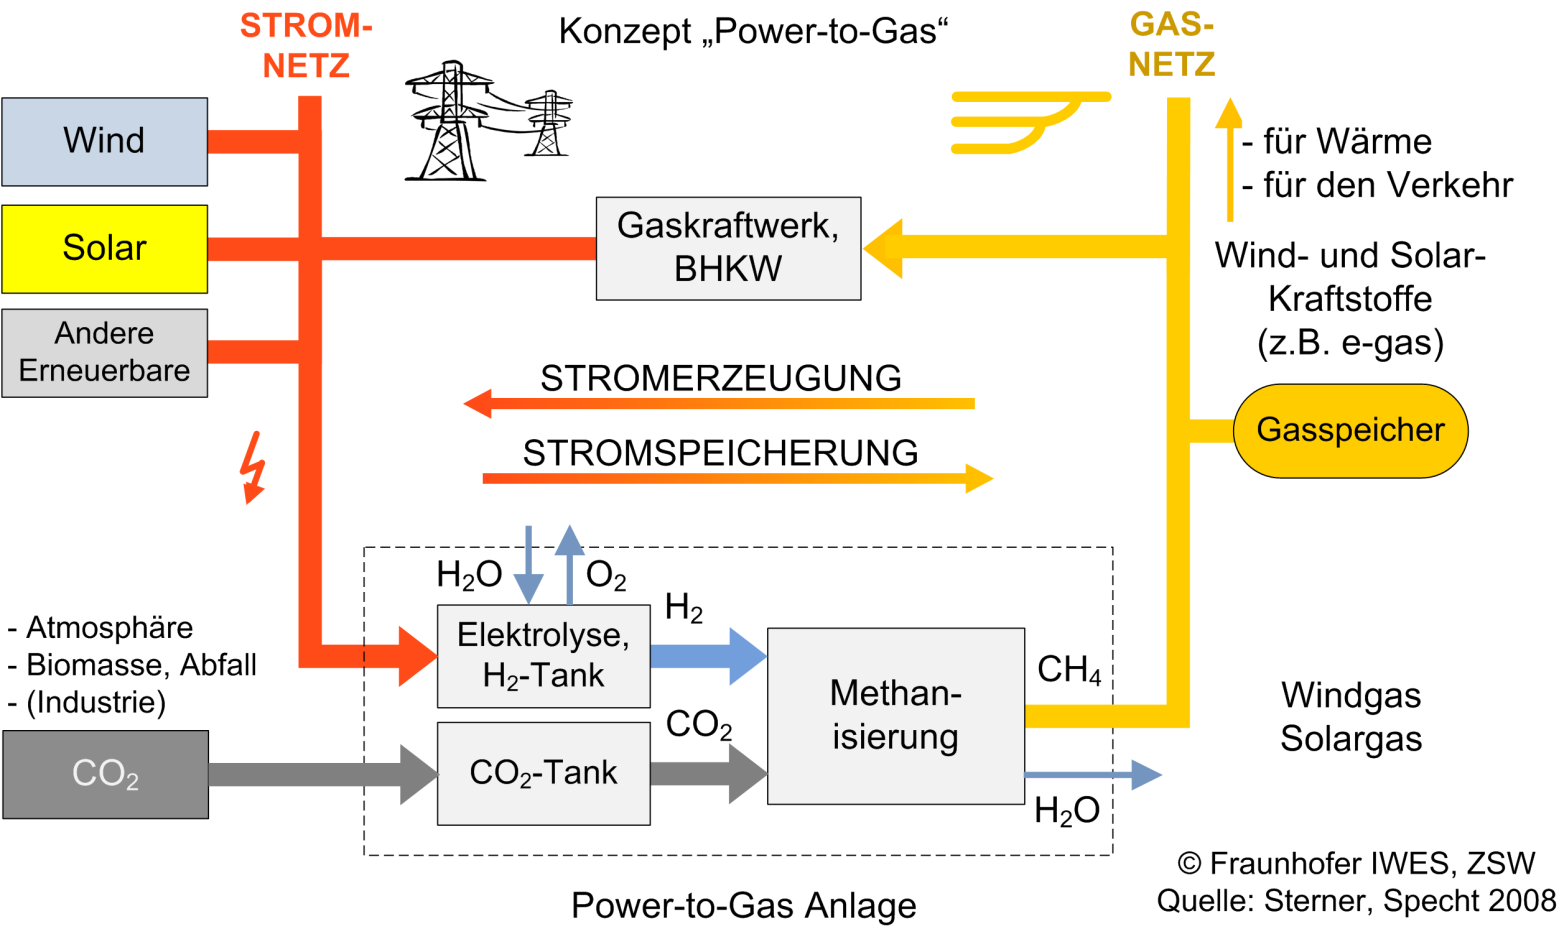 Power-to-Gas als